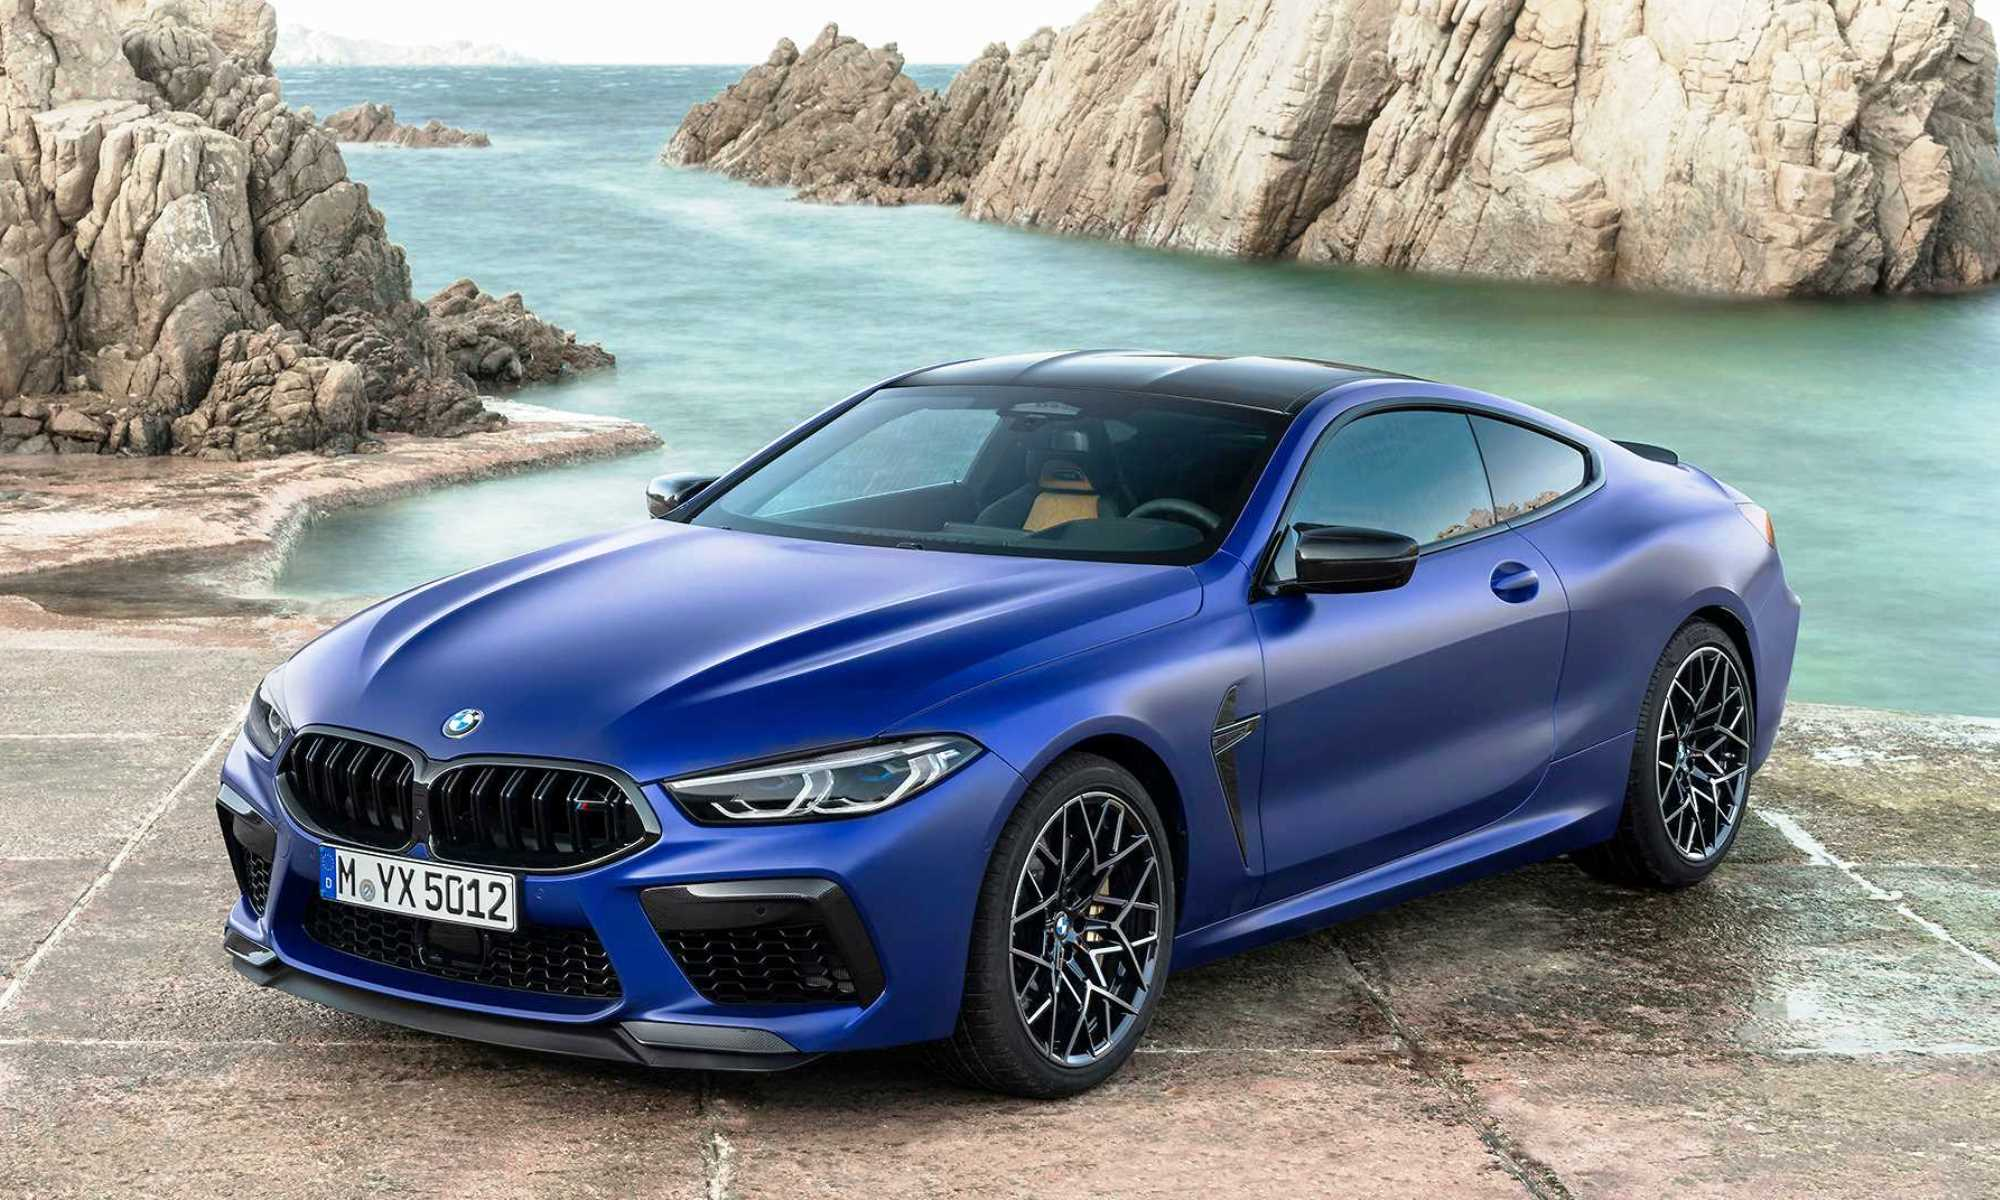 All-new BMW M8 Coupe